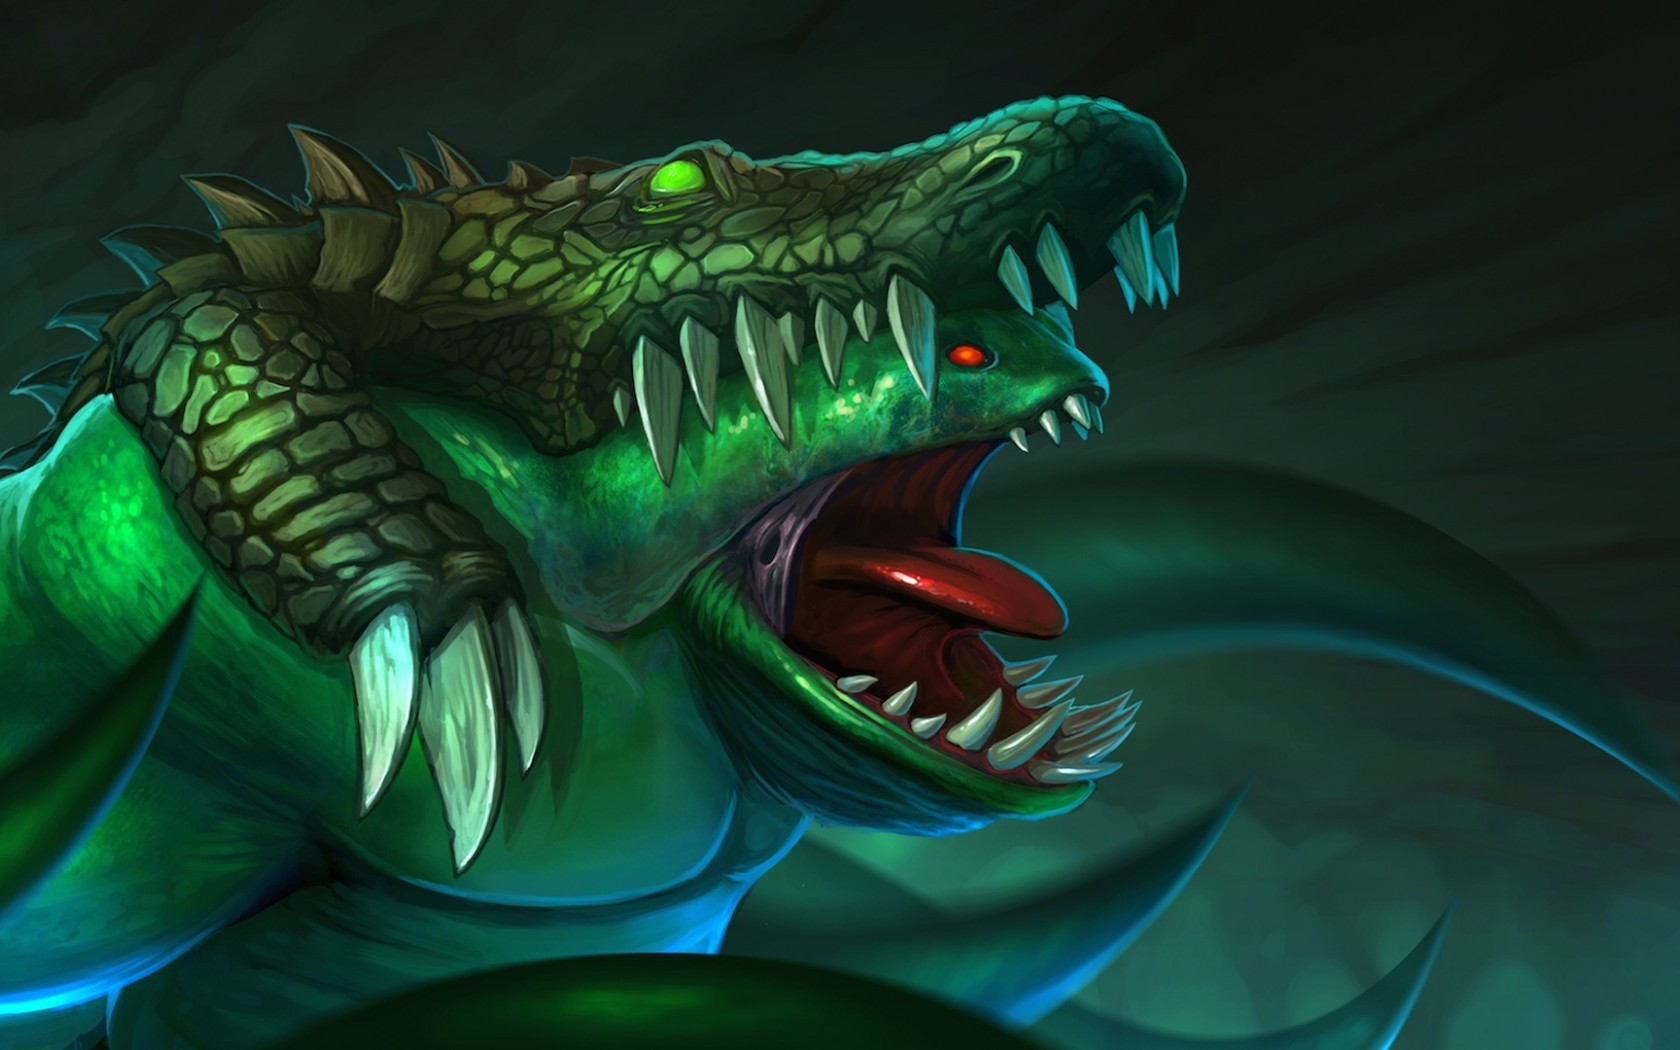 Tidehunter hd wallpapers for computer desktop Dota 2